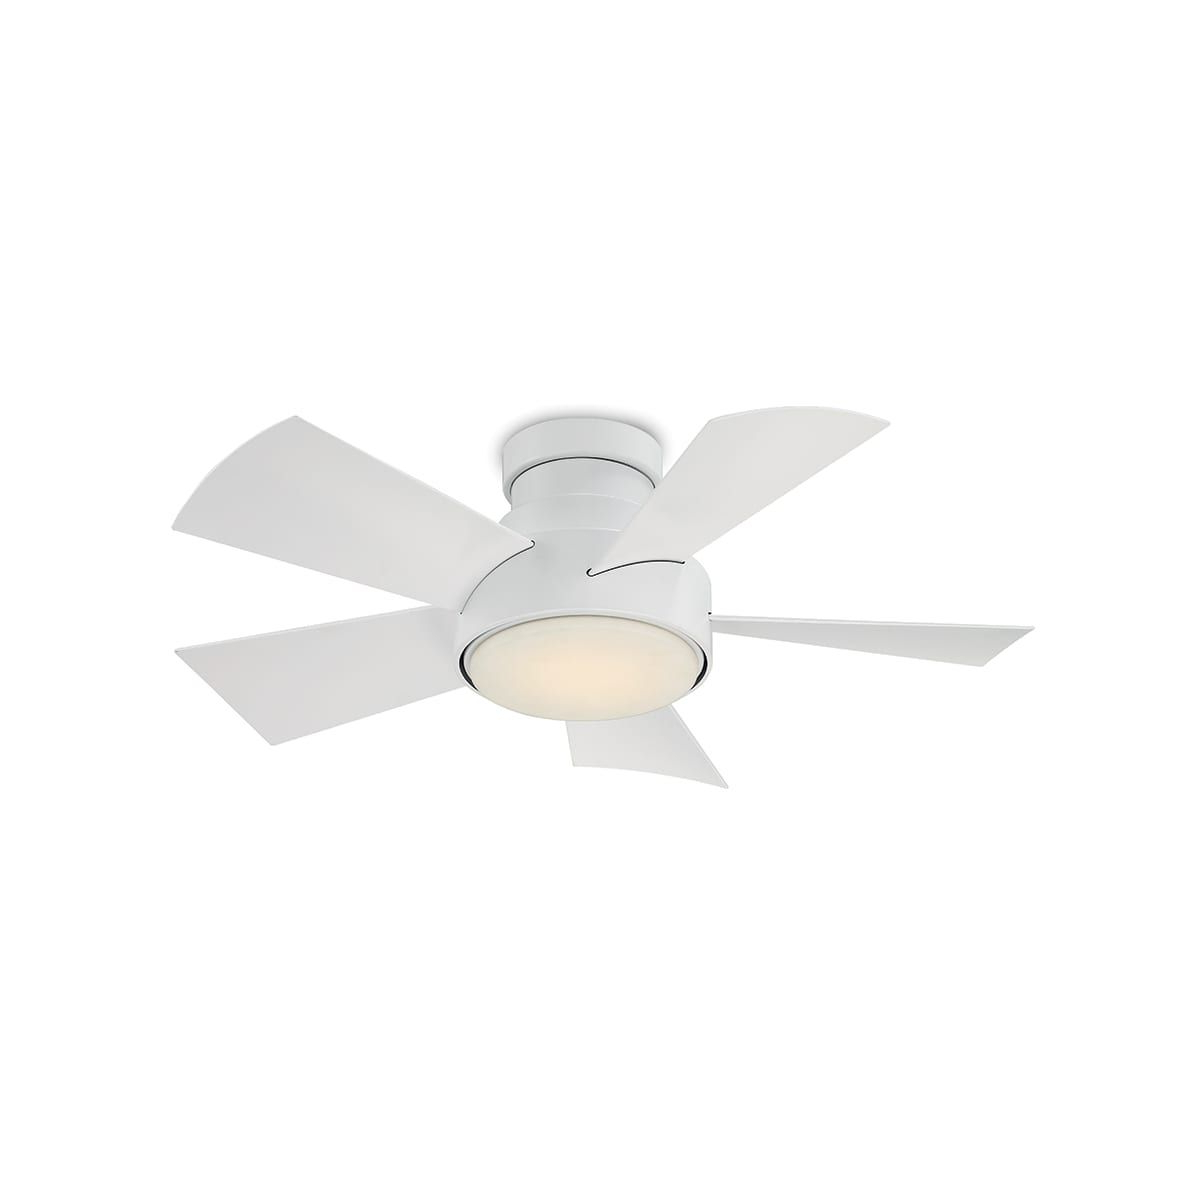 Eliora 5 Blade Ceiling Fans Inside Latest Minkaaire Supra 32 In 2019 Lake House Ceiling Fan Blades (View 8 of 20)